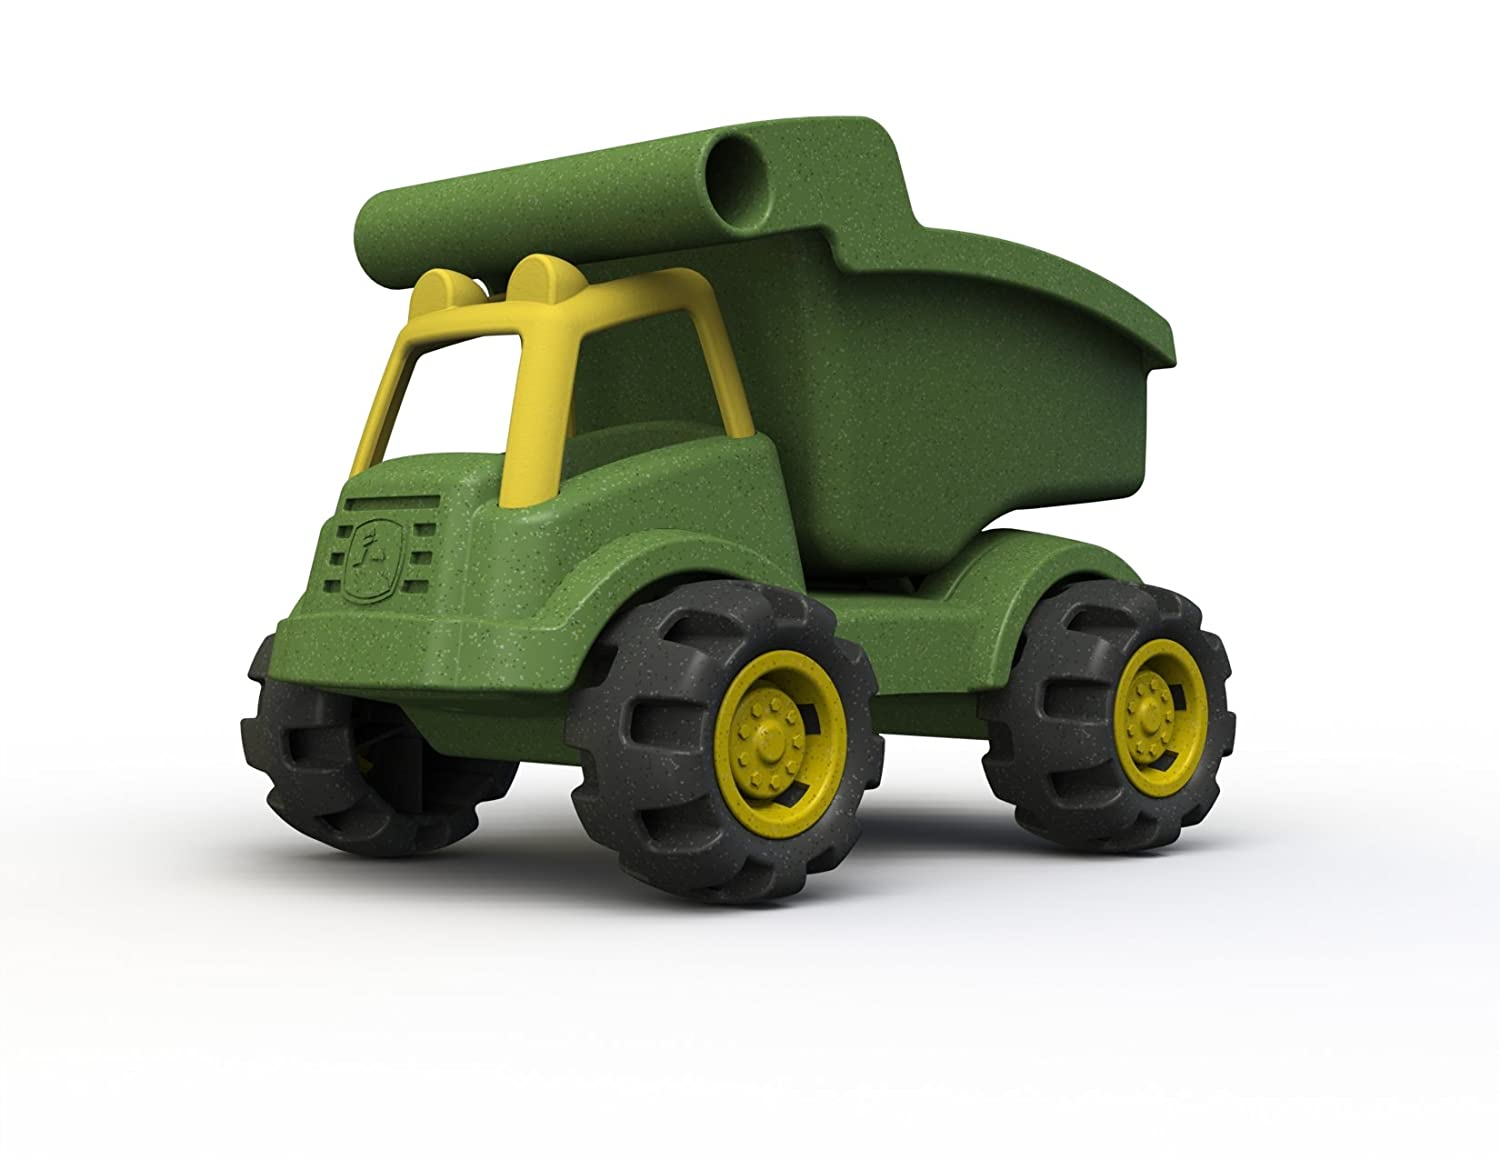 BeginAgain John Deere Dump Truck Made in The USA Farm Sandbox Toy for 2, 3 and 4 Year Olds, Green/Yellow Begin Again JD1602